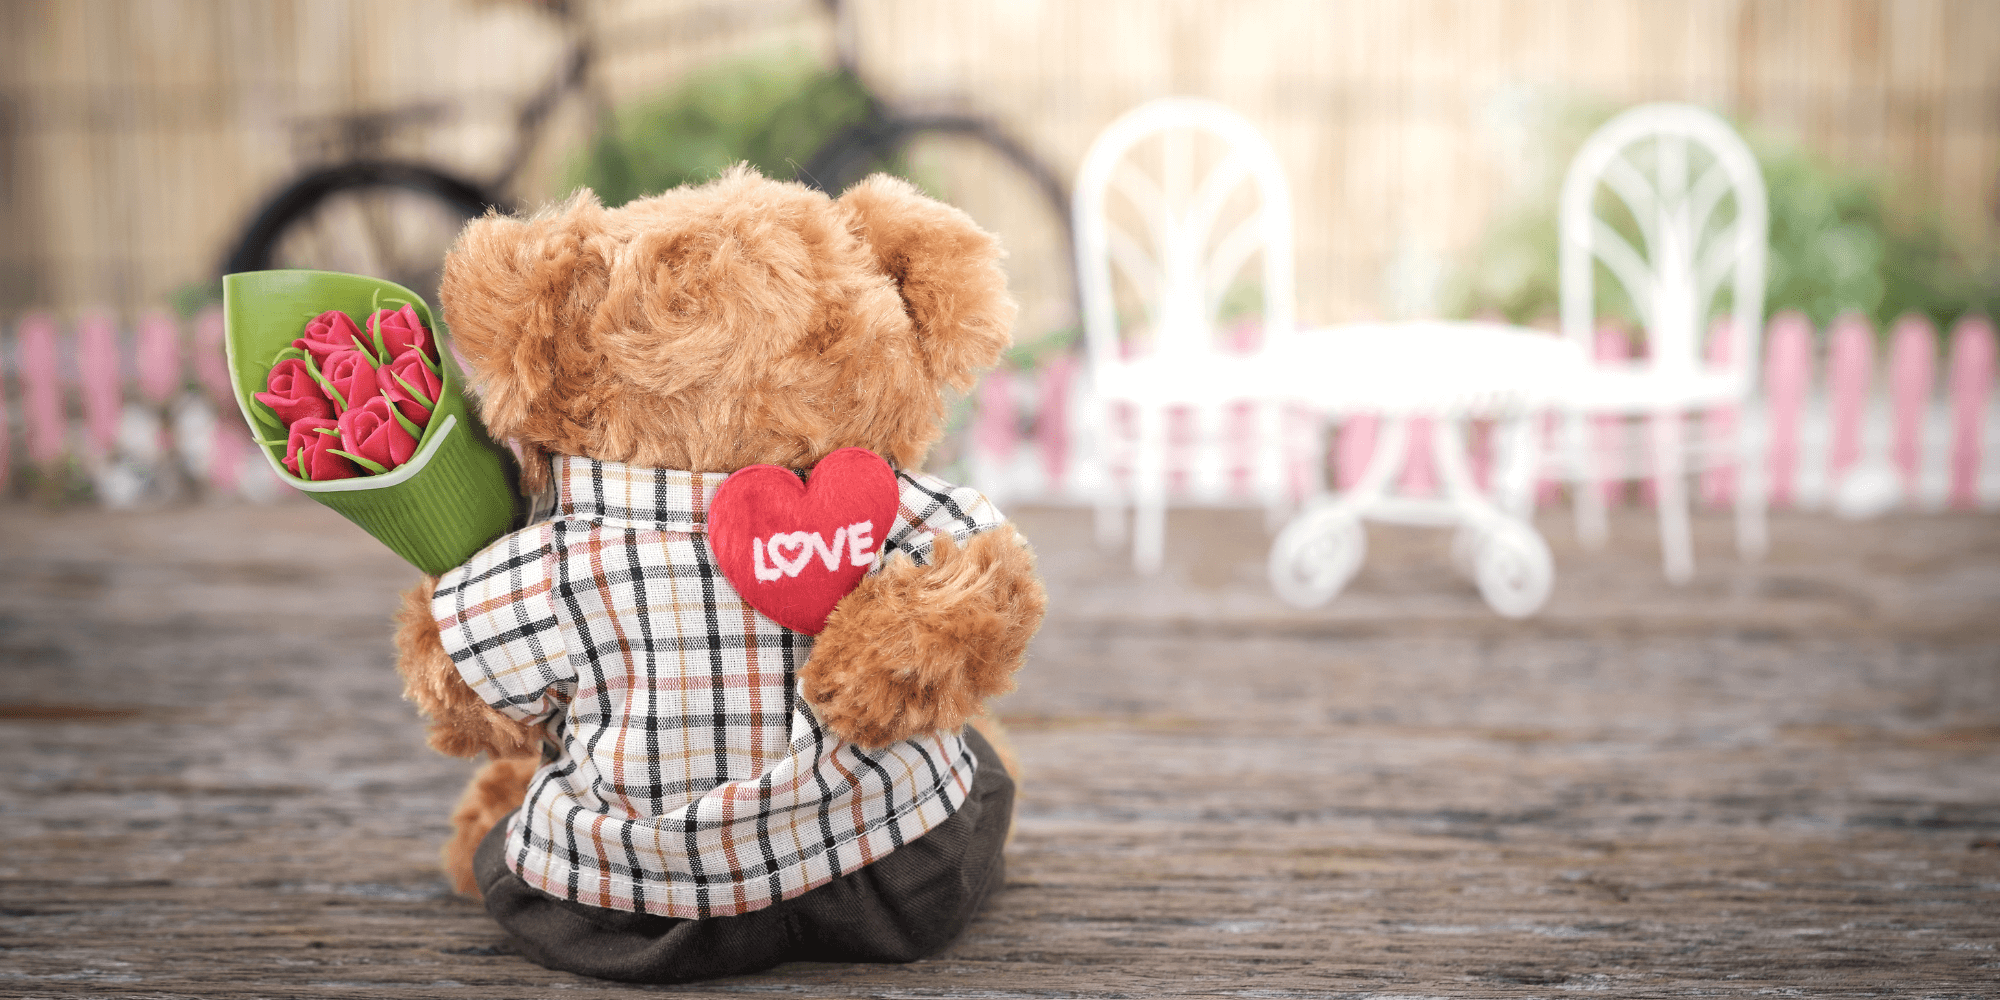 Teddy bear gift with flowers